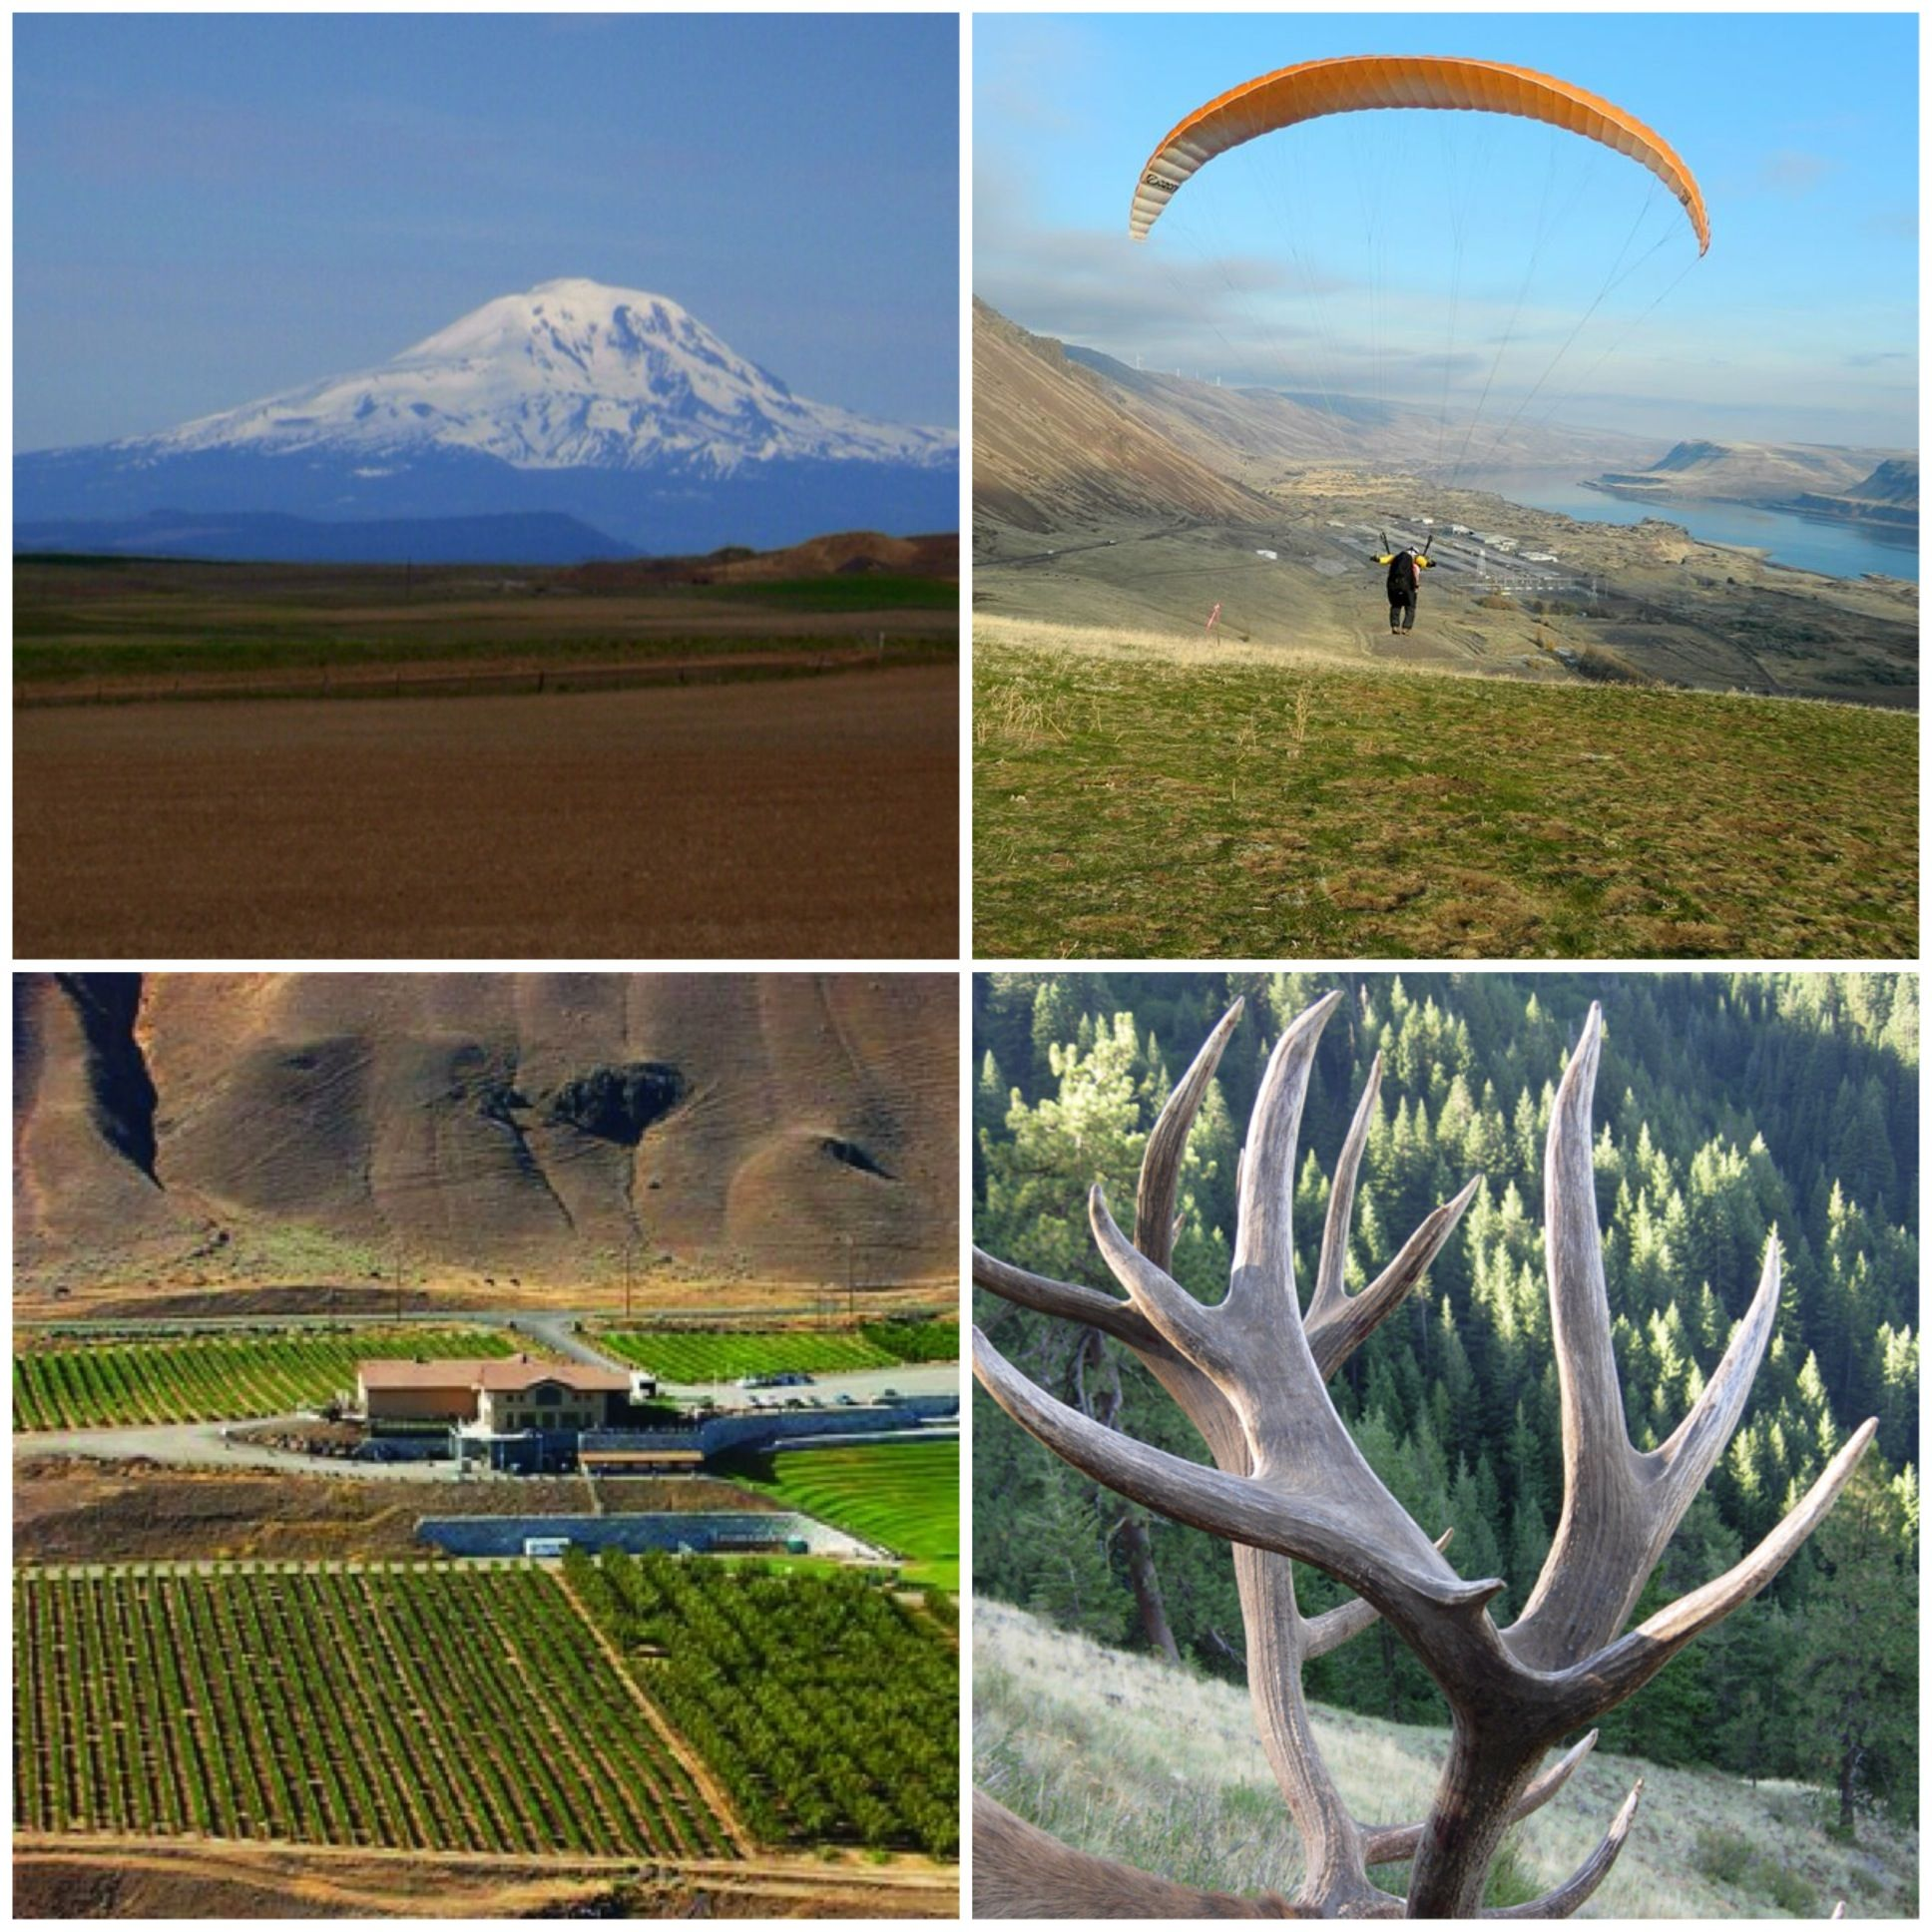 100 acres for sale in the Columbia River Gorge. Goldendale, WA . Income Tax free. Private Sale. jonpnw@gmail.com #realestate #tax #investment #cycling #paragliding #windsurfing #kiteboarding #winery #vineyards